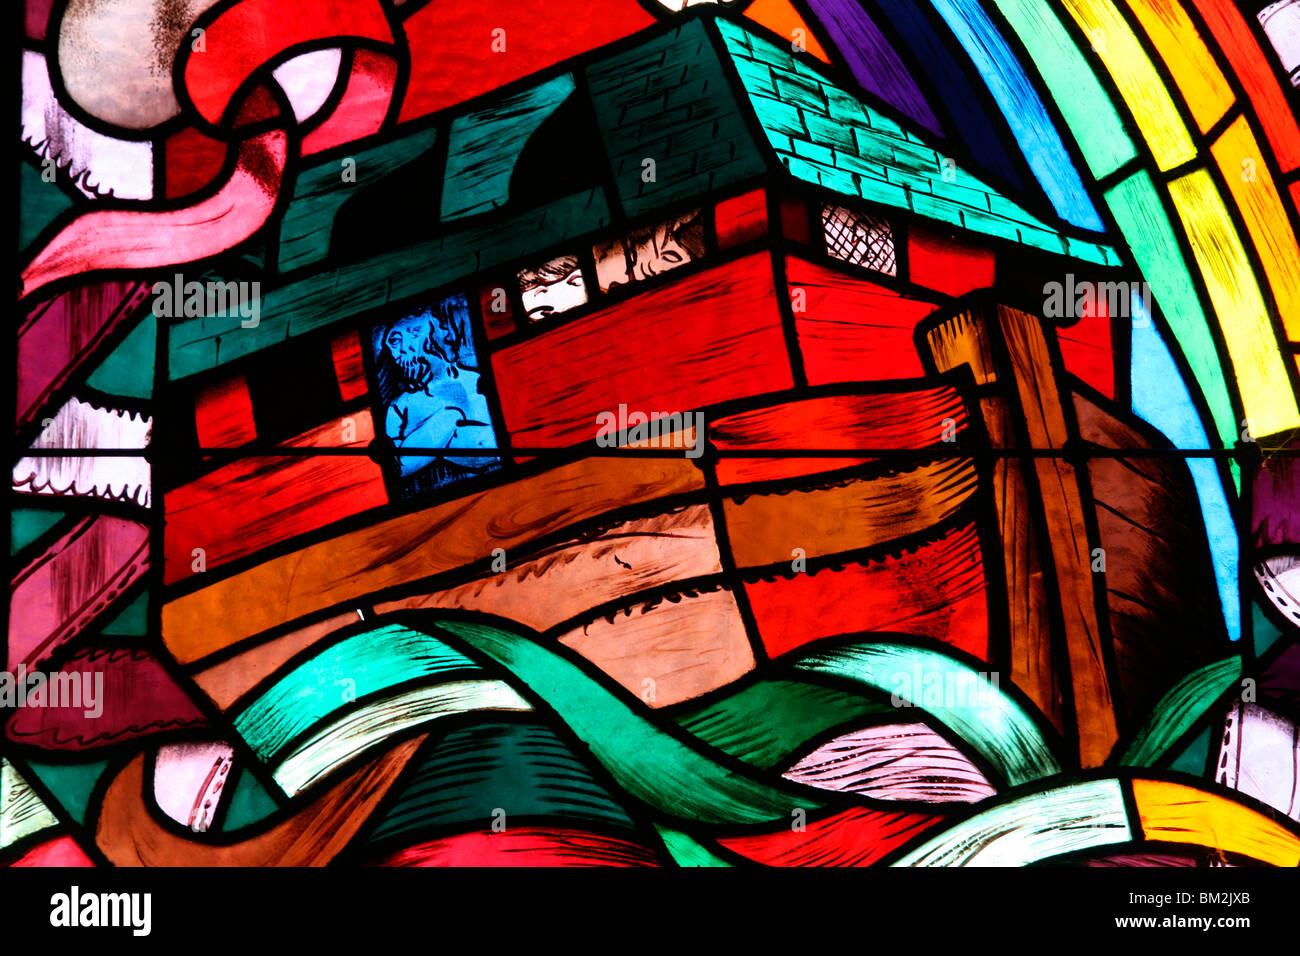 Noah's Ark depicted in stained glass window, Saint-Joseph des Fins church, Annecy, Haute Savoie, France Stock Photo